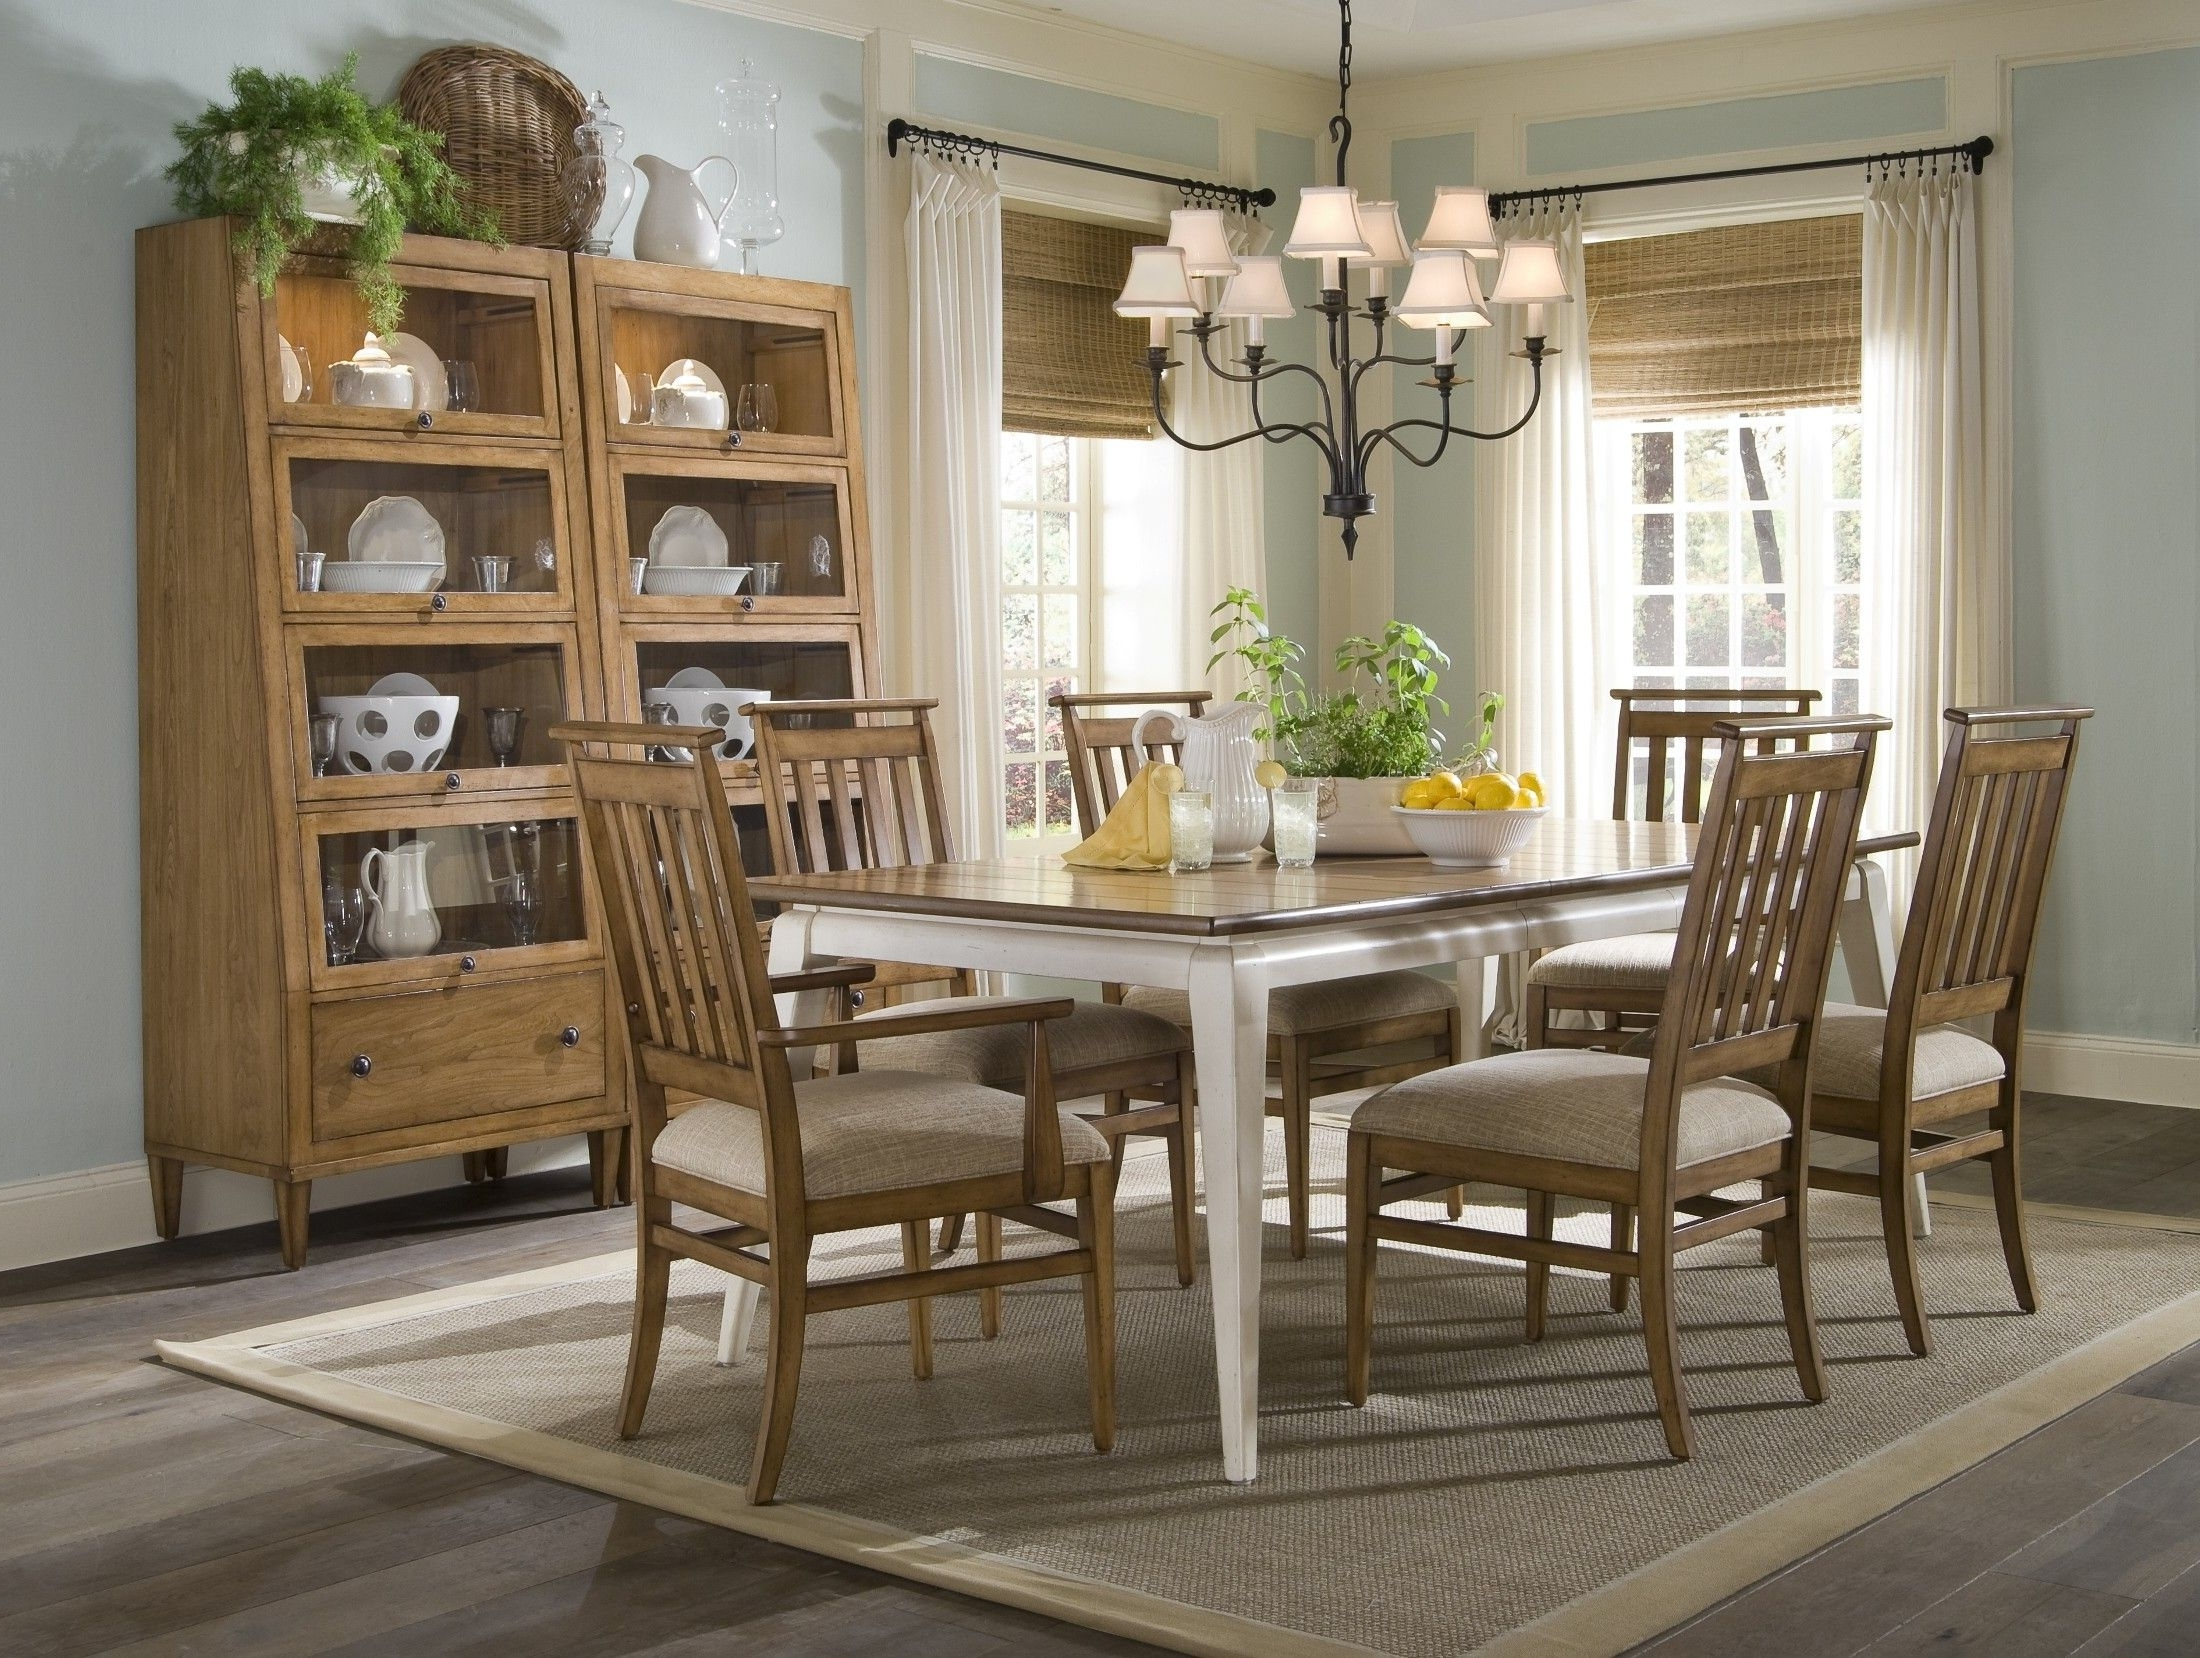 Norwood 6 Piece Rectangular Extension Dining Sets With Upholstered Side Chairs Inside 2018 Country Dining Room Furniture Inside Modern Design White Decorating (View 11 of 25)